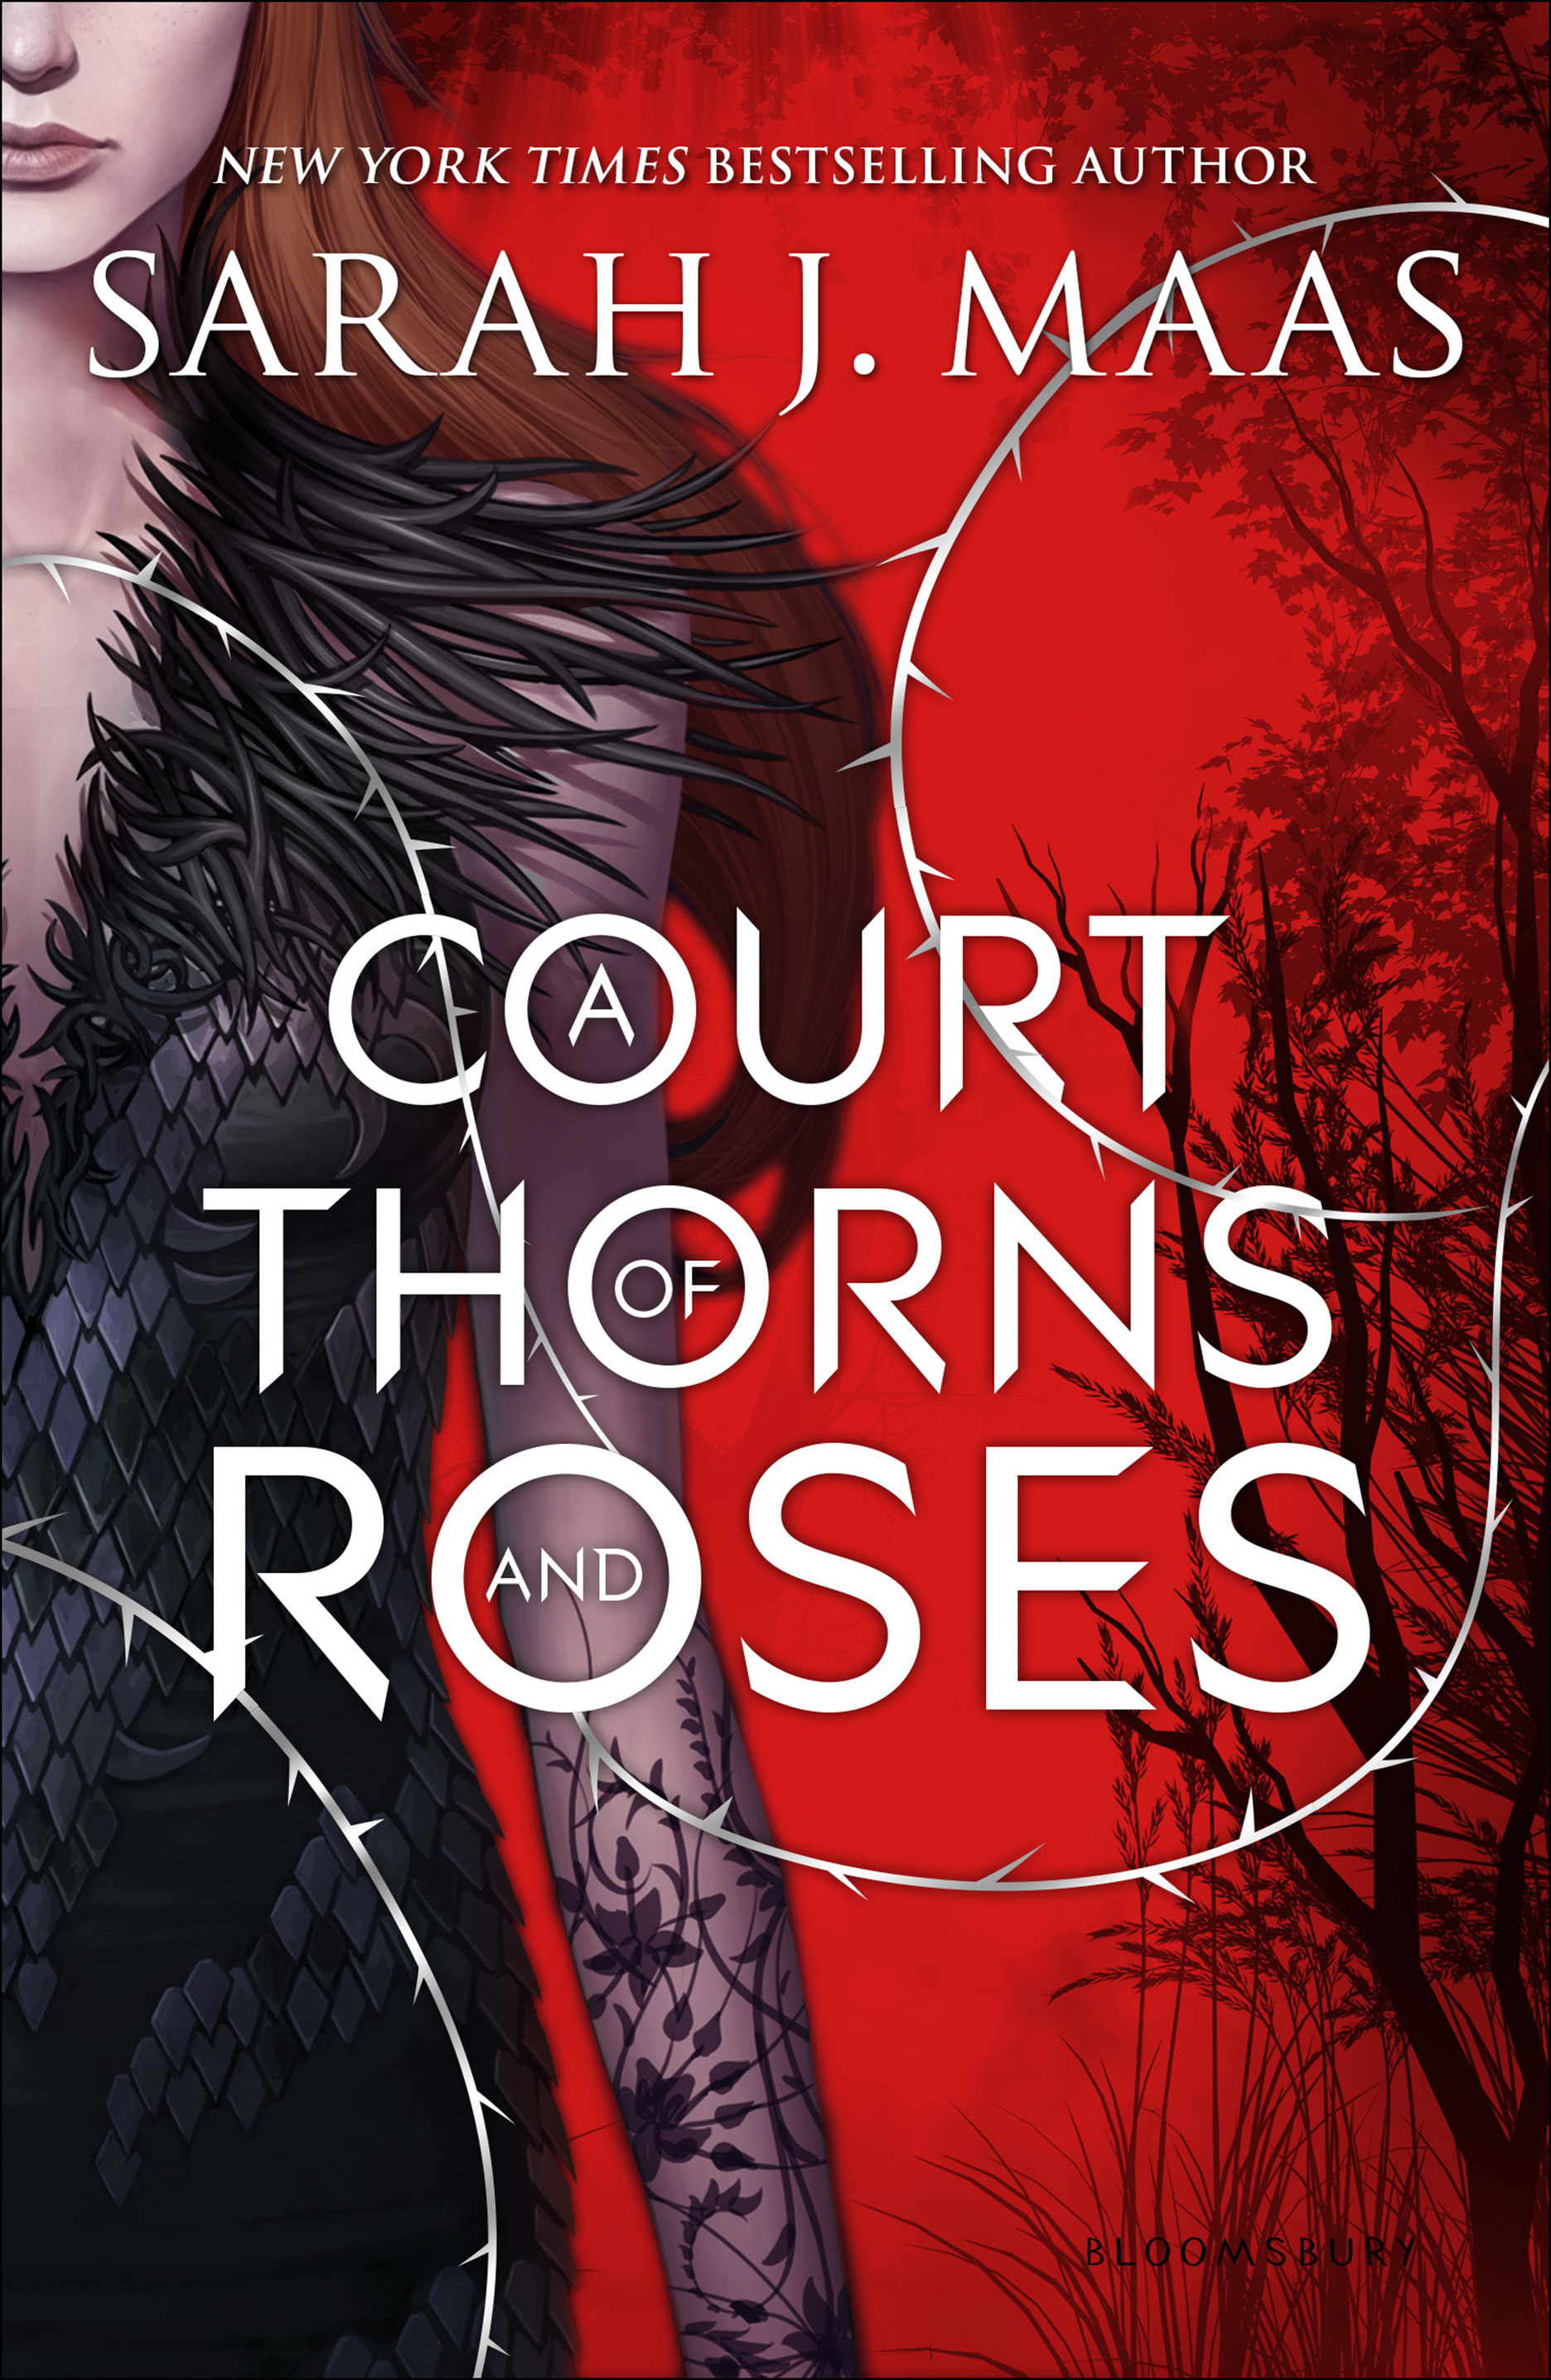 A court of thorns and roses pdf free